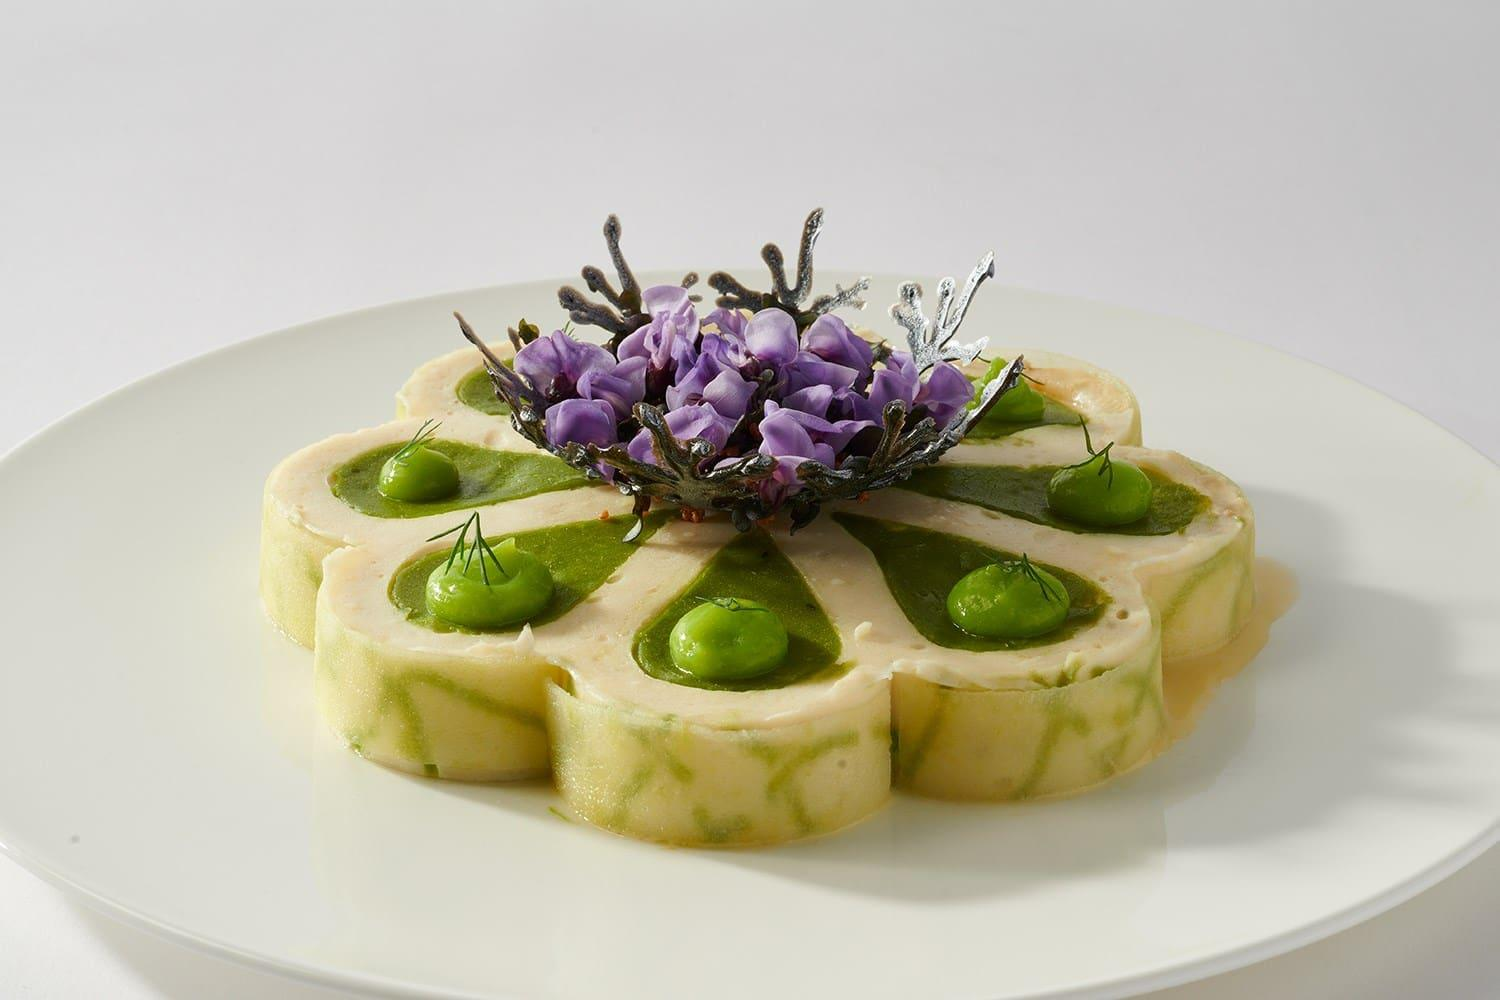 original_Bocuse-d-or-Iceland-plate.jpg